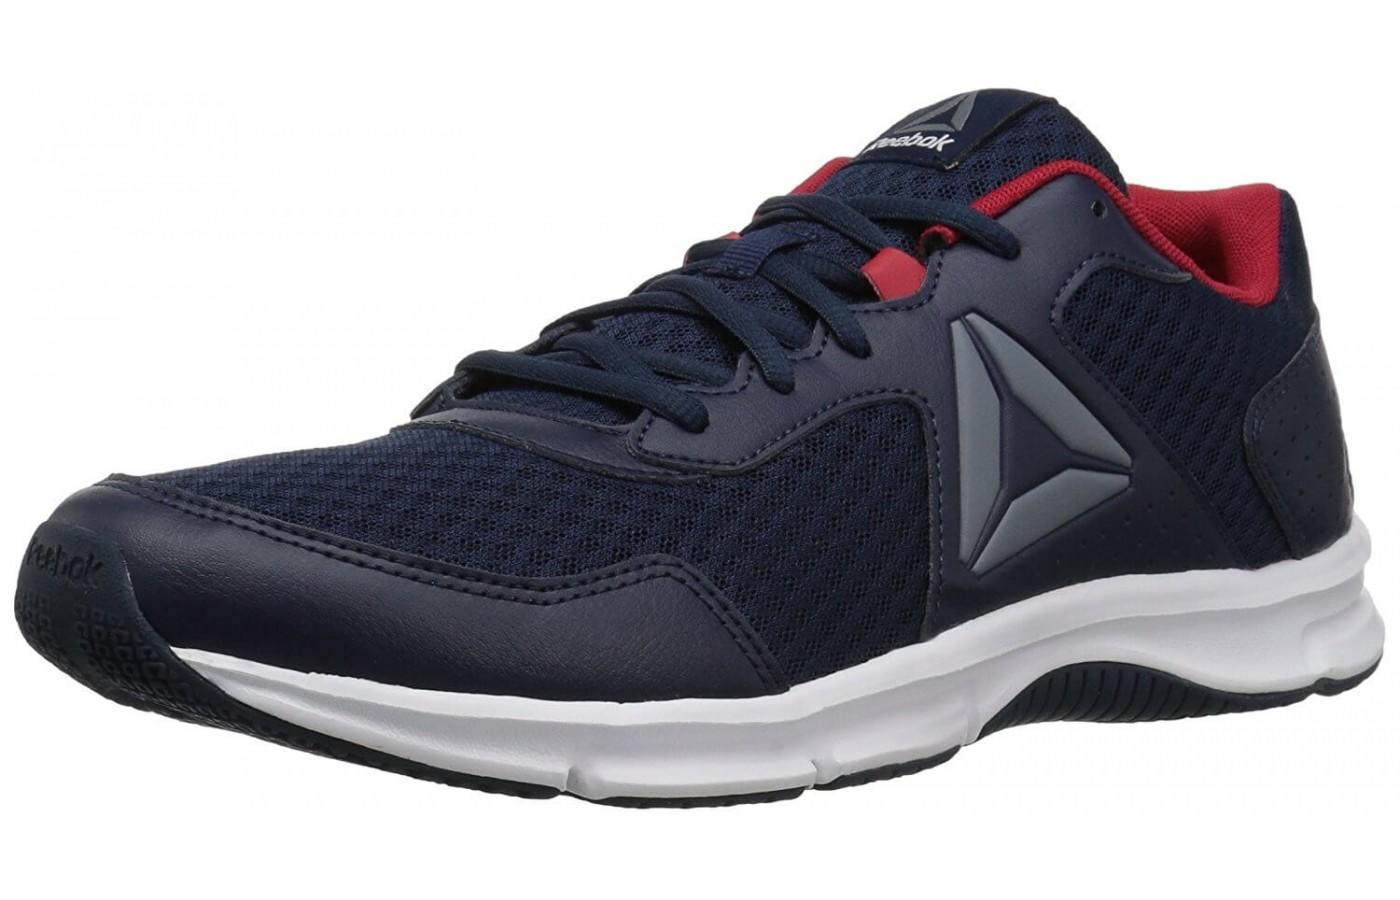 aab323313d0 The Reebok Express Runner provides the runner with a very breathable upper.